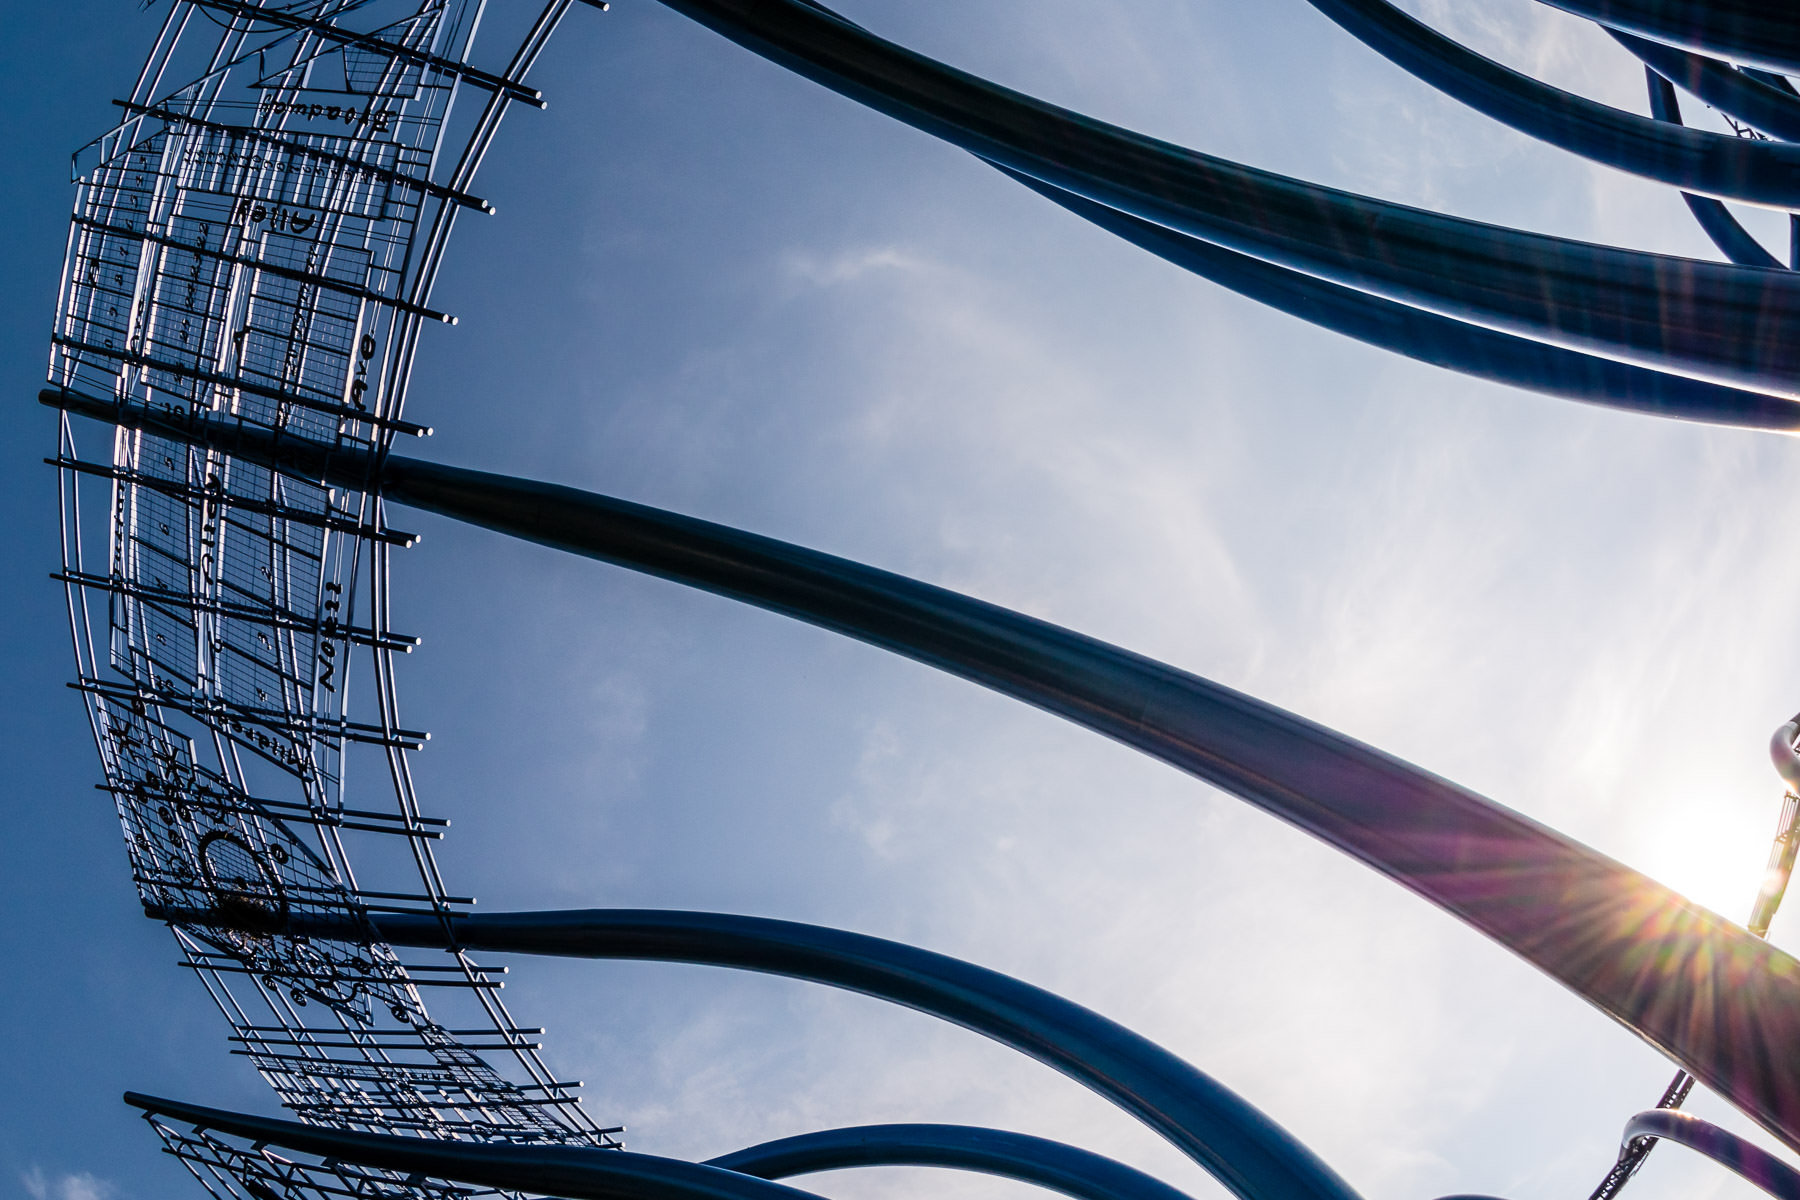 The sun peeks from behind the 45-foot-tall, 140-foot-wide Blueprints sculpture at Addison Circle in Addison, Texas.